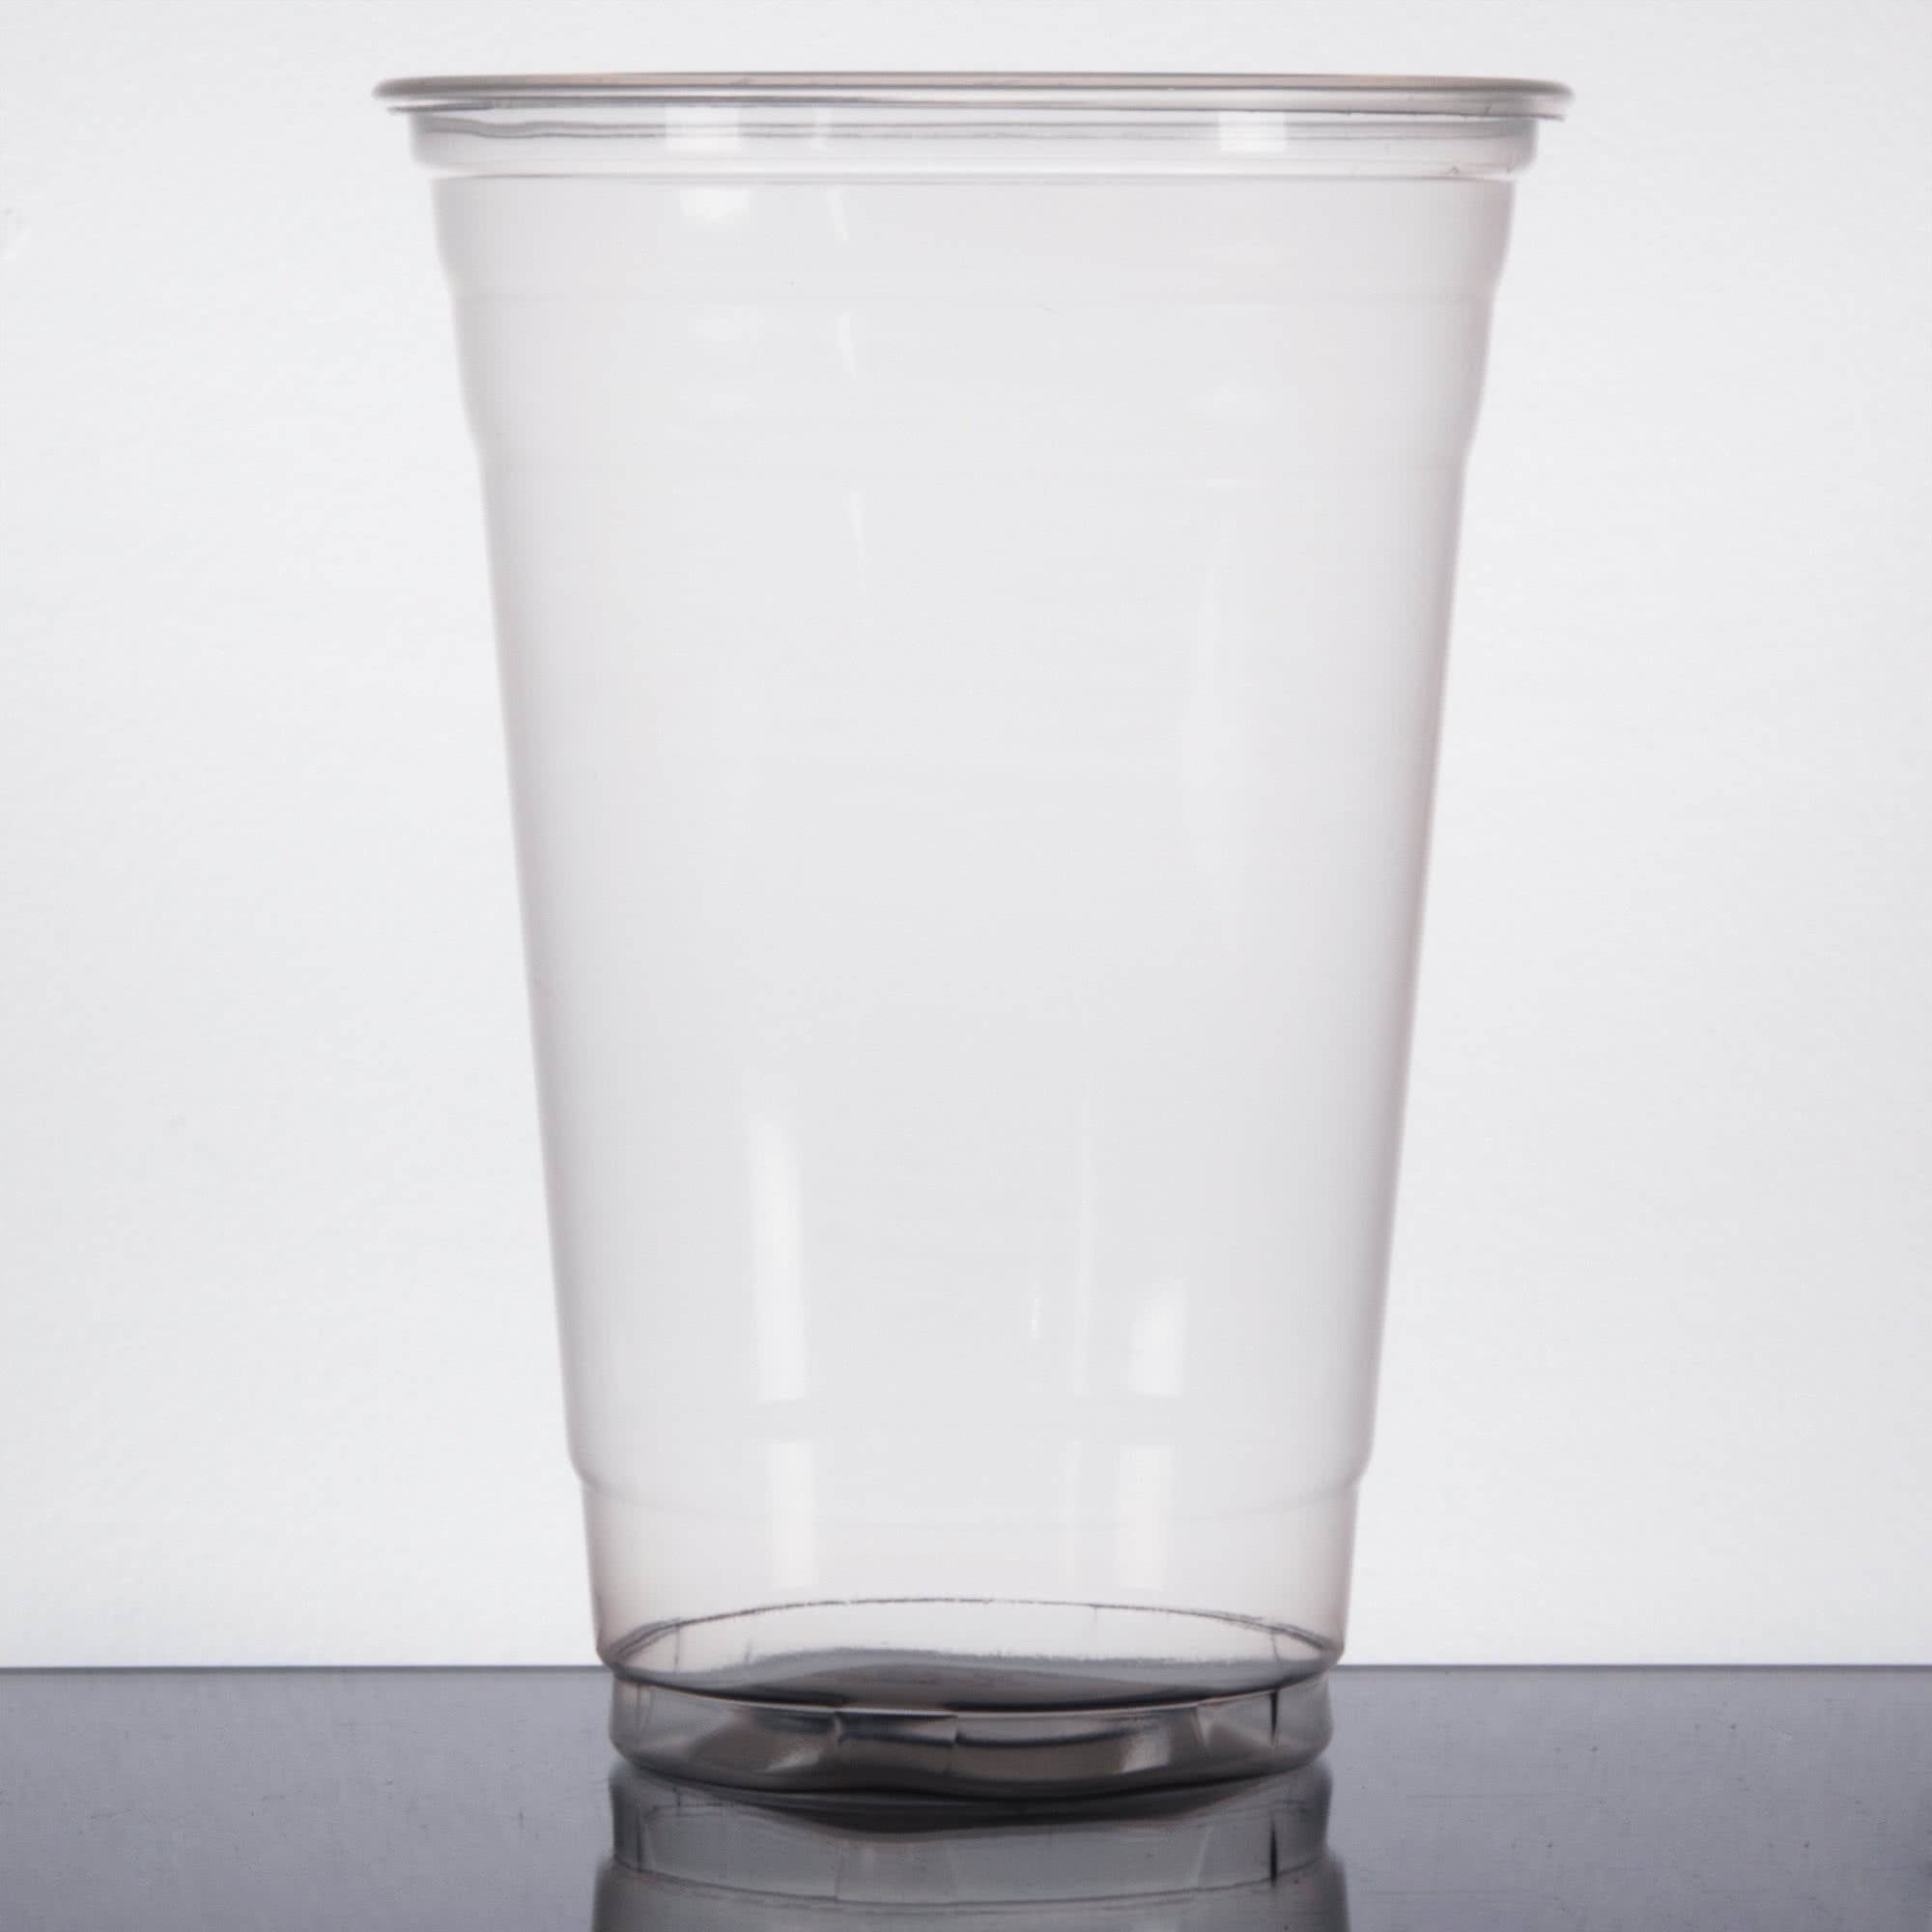 TableTop King 20PX Conex ClearPro 20 oz. Polypropylene Cold Cup - 600/Case